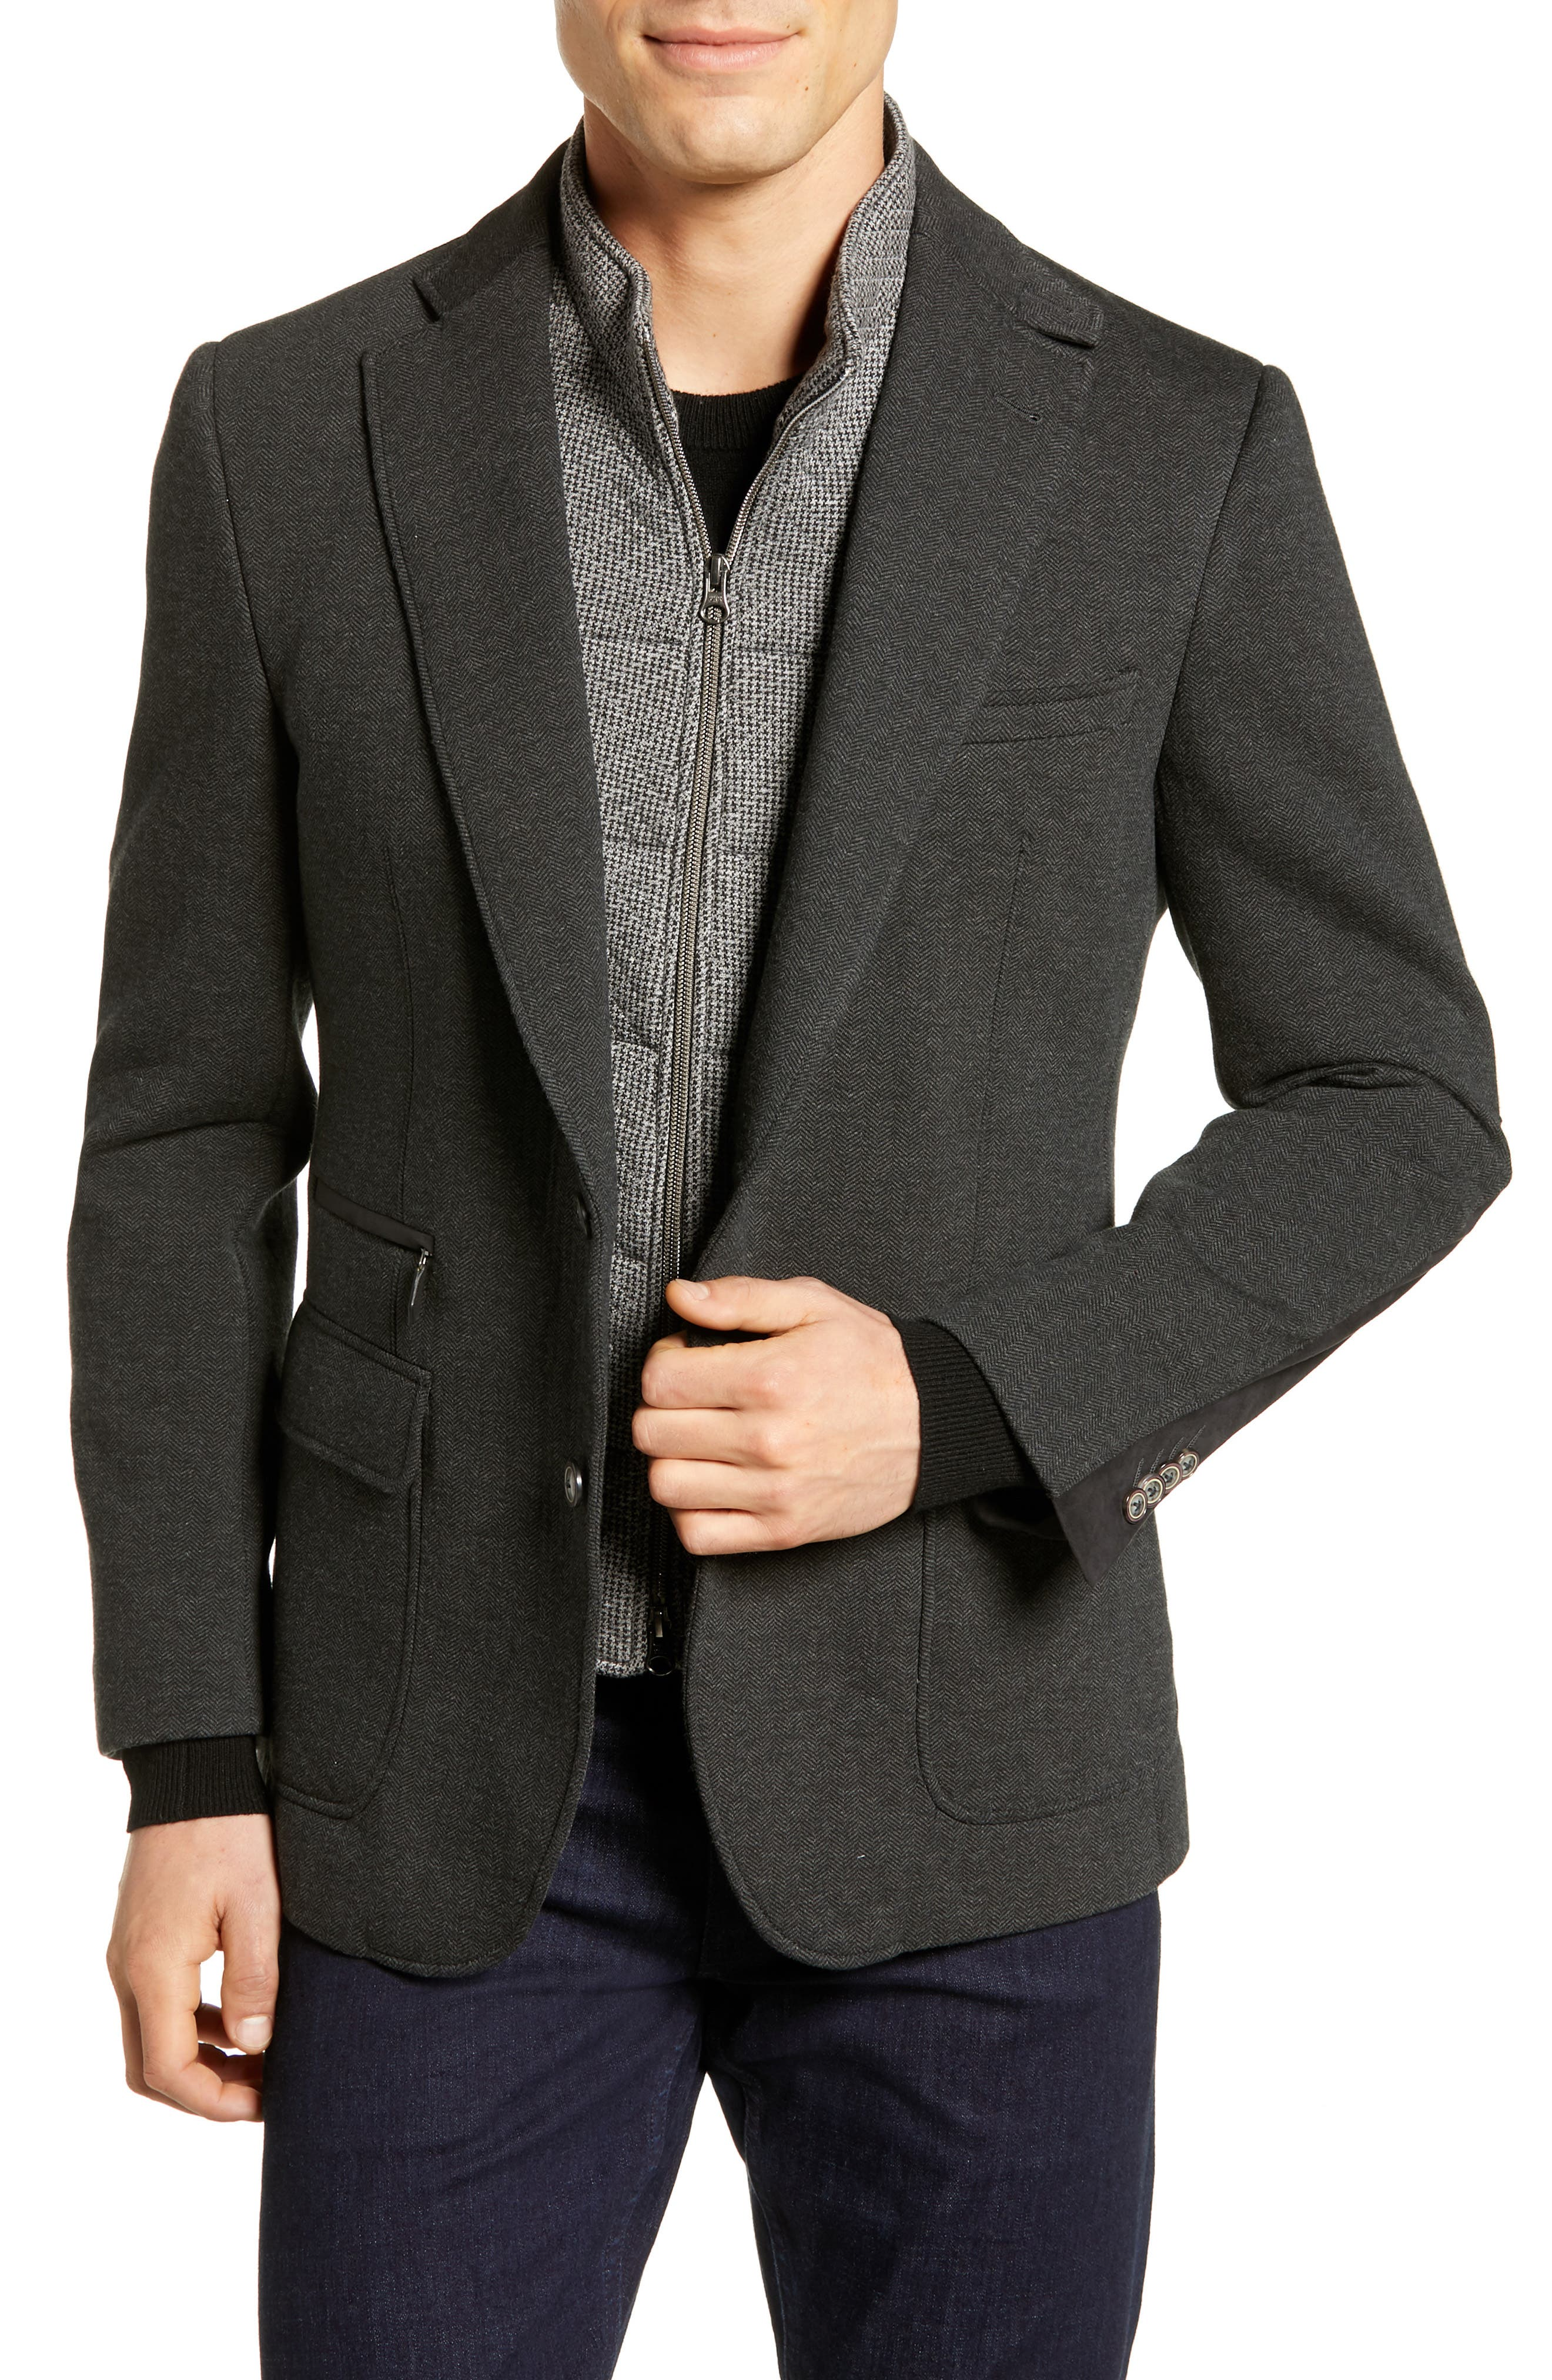 Downhill Tailored Fit Sport Coat,                         Main,                         color, 020